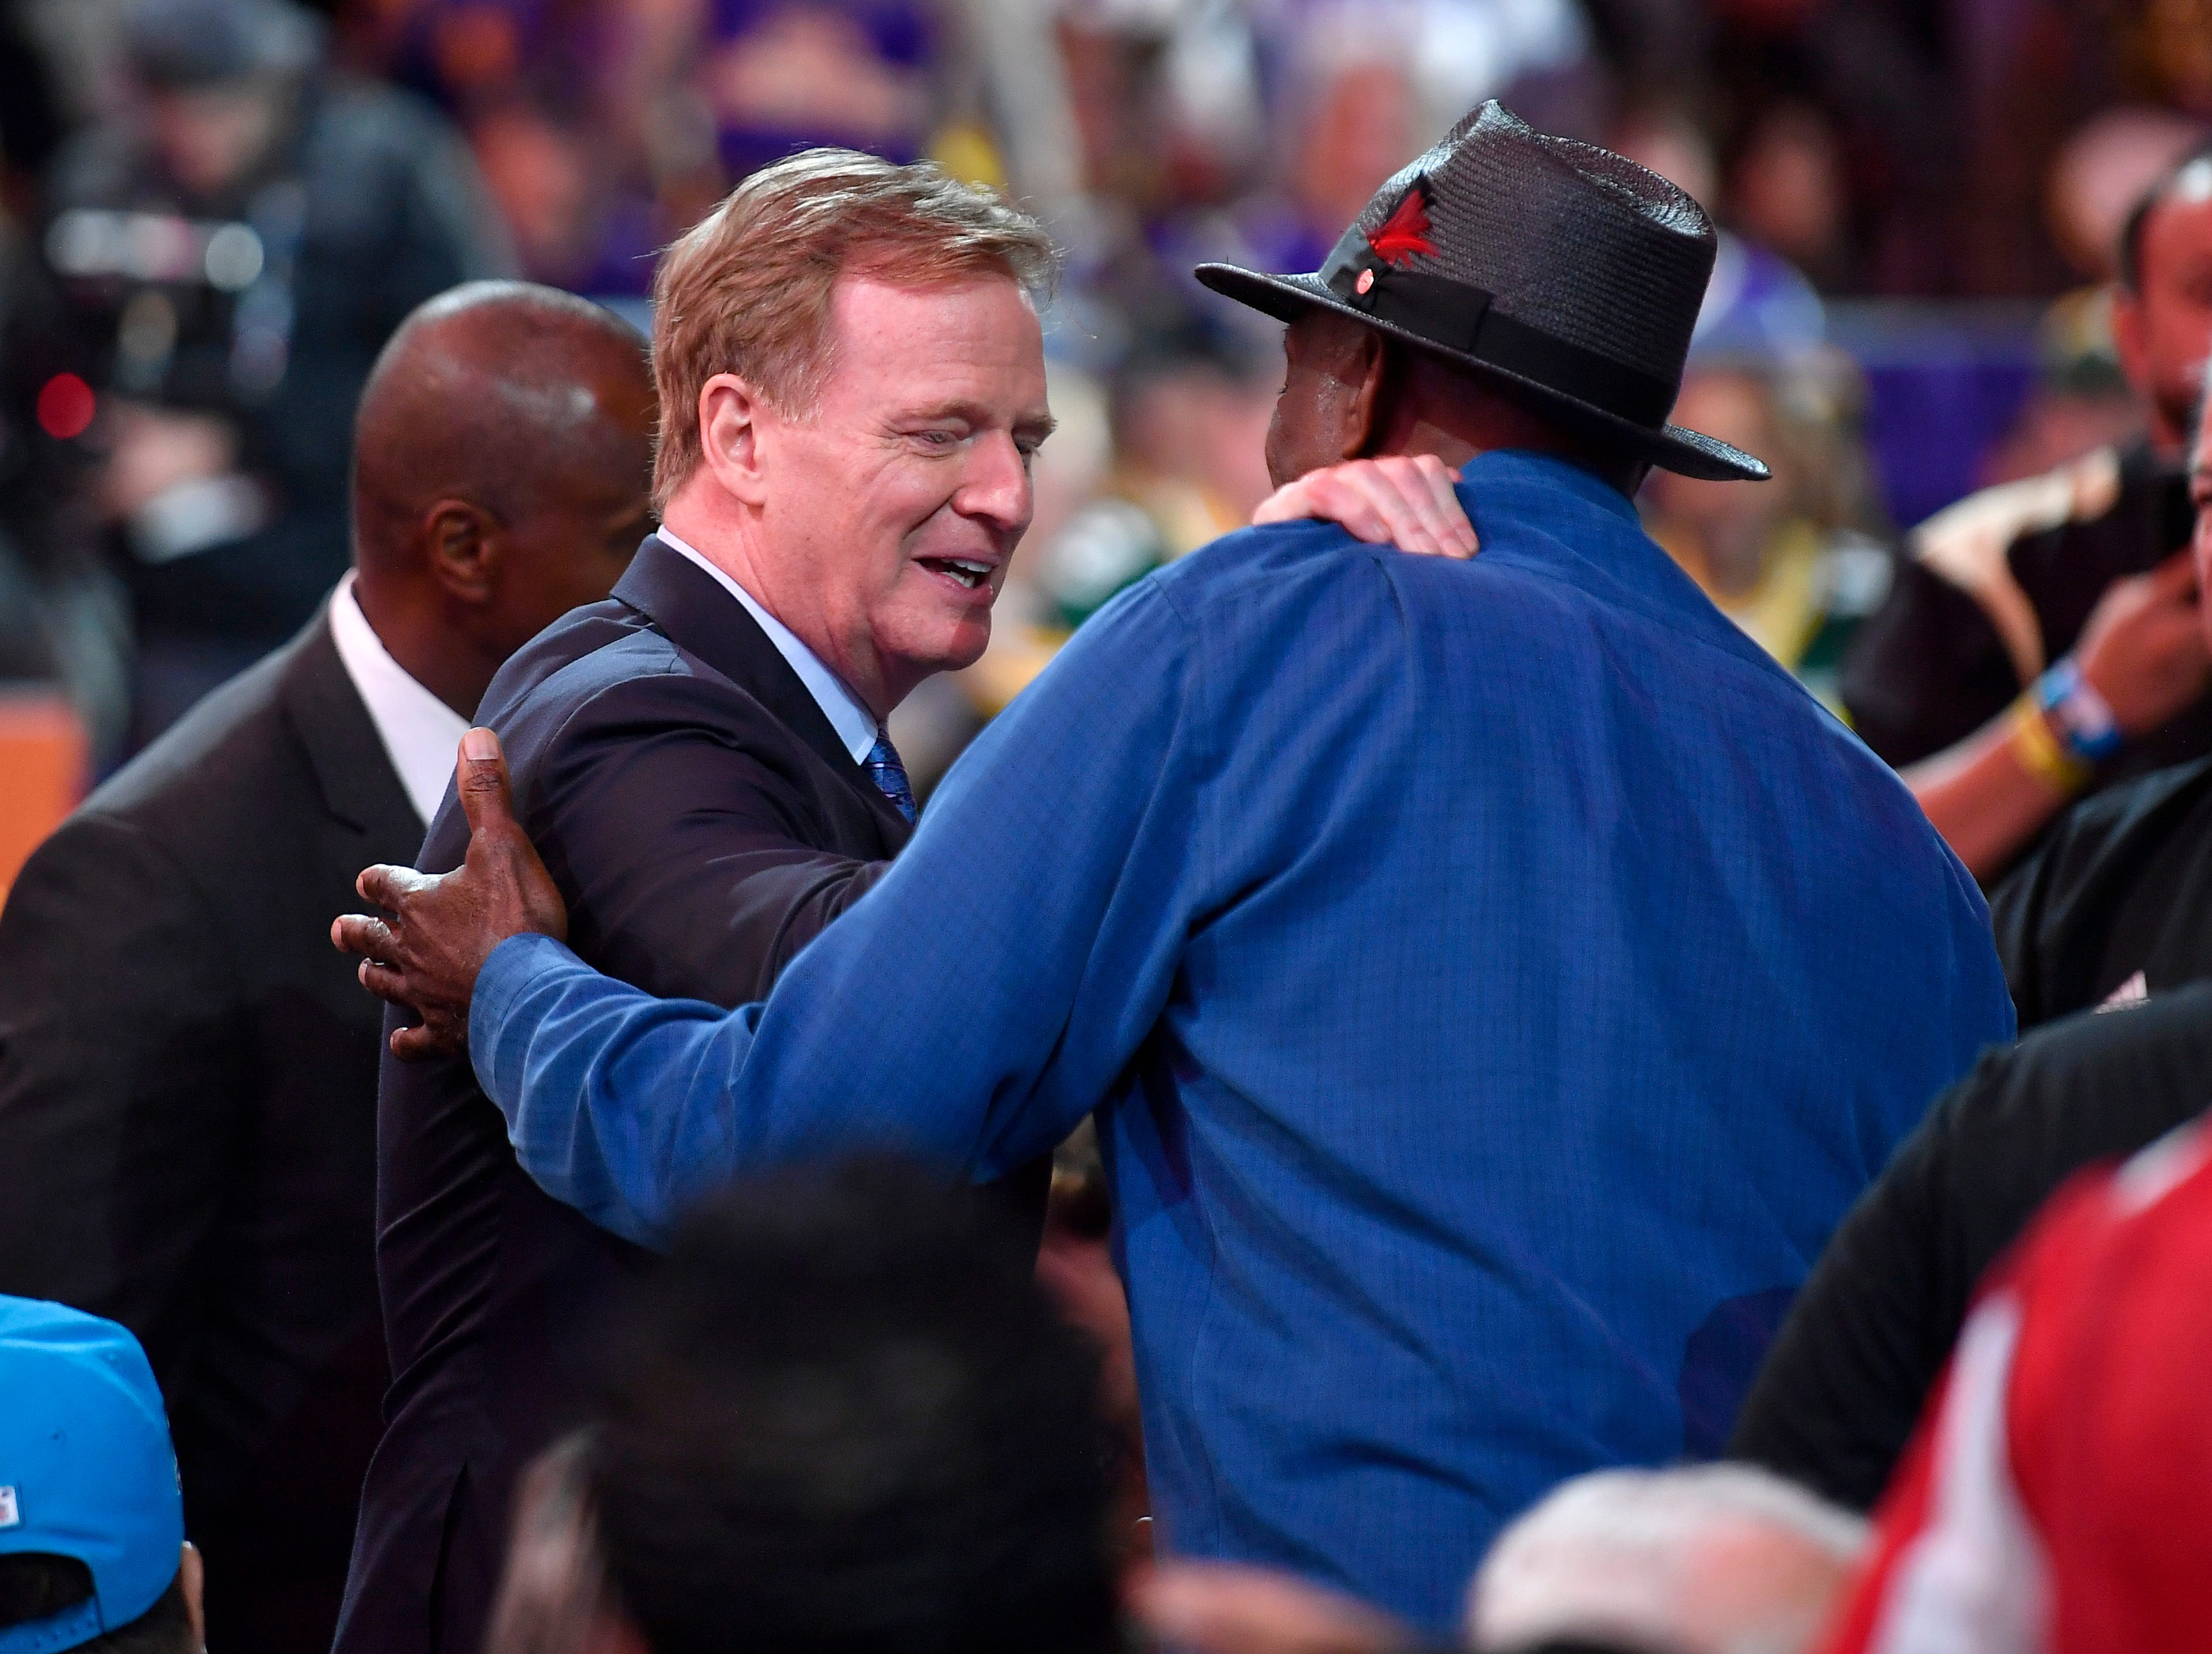 NFL Commissioner Roger Goodell comes down from the stage to greet fans during the first round of the NFL Draft Thursday, April 25, 2019, in Nashville, Tenn.